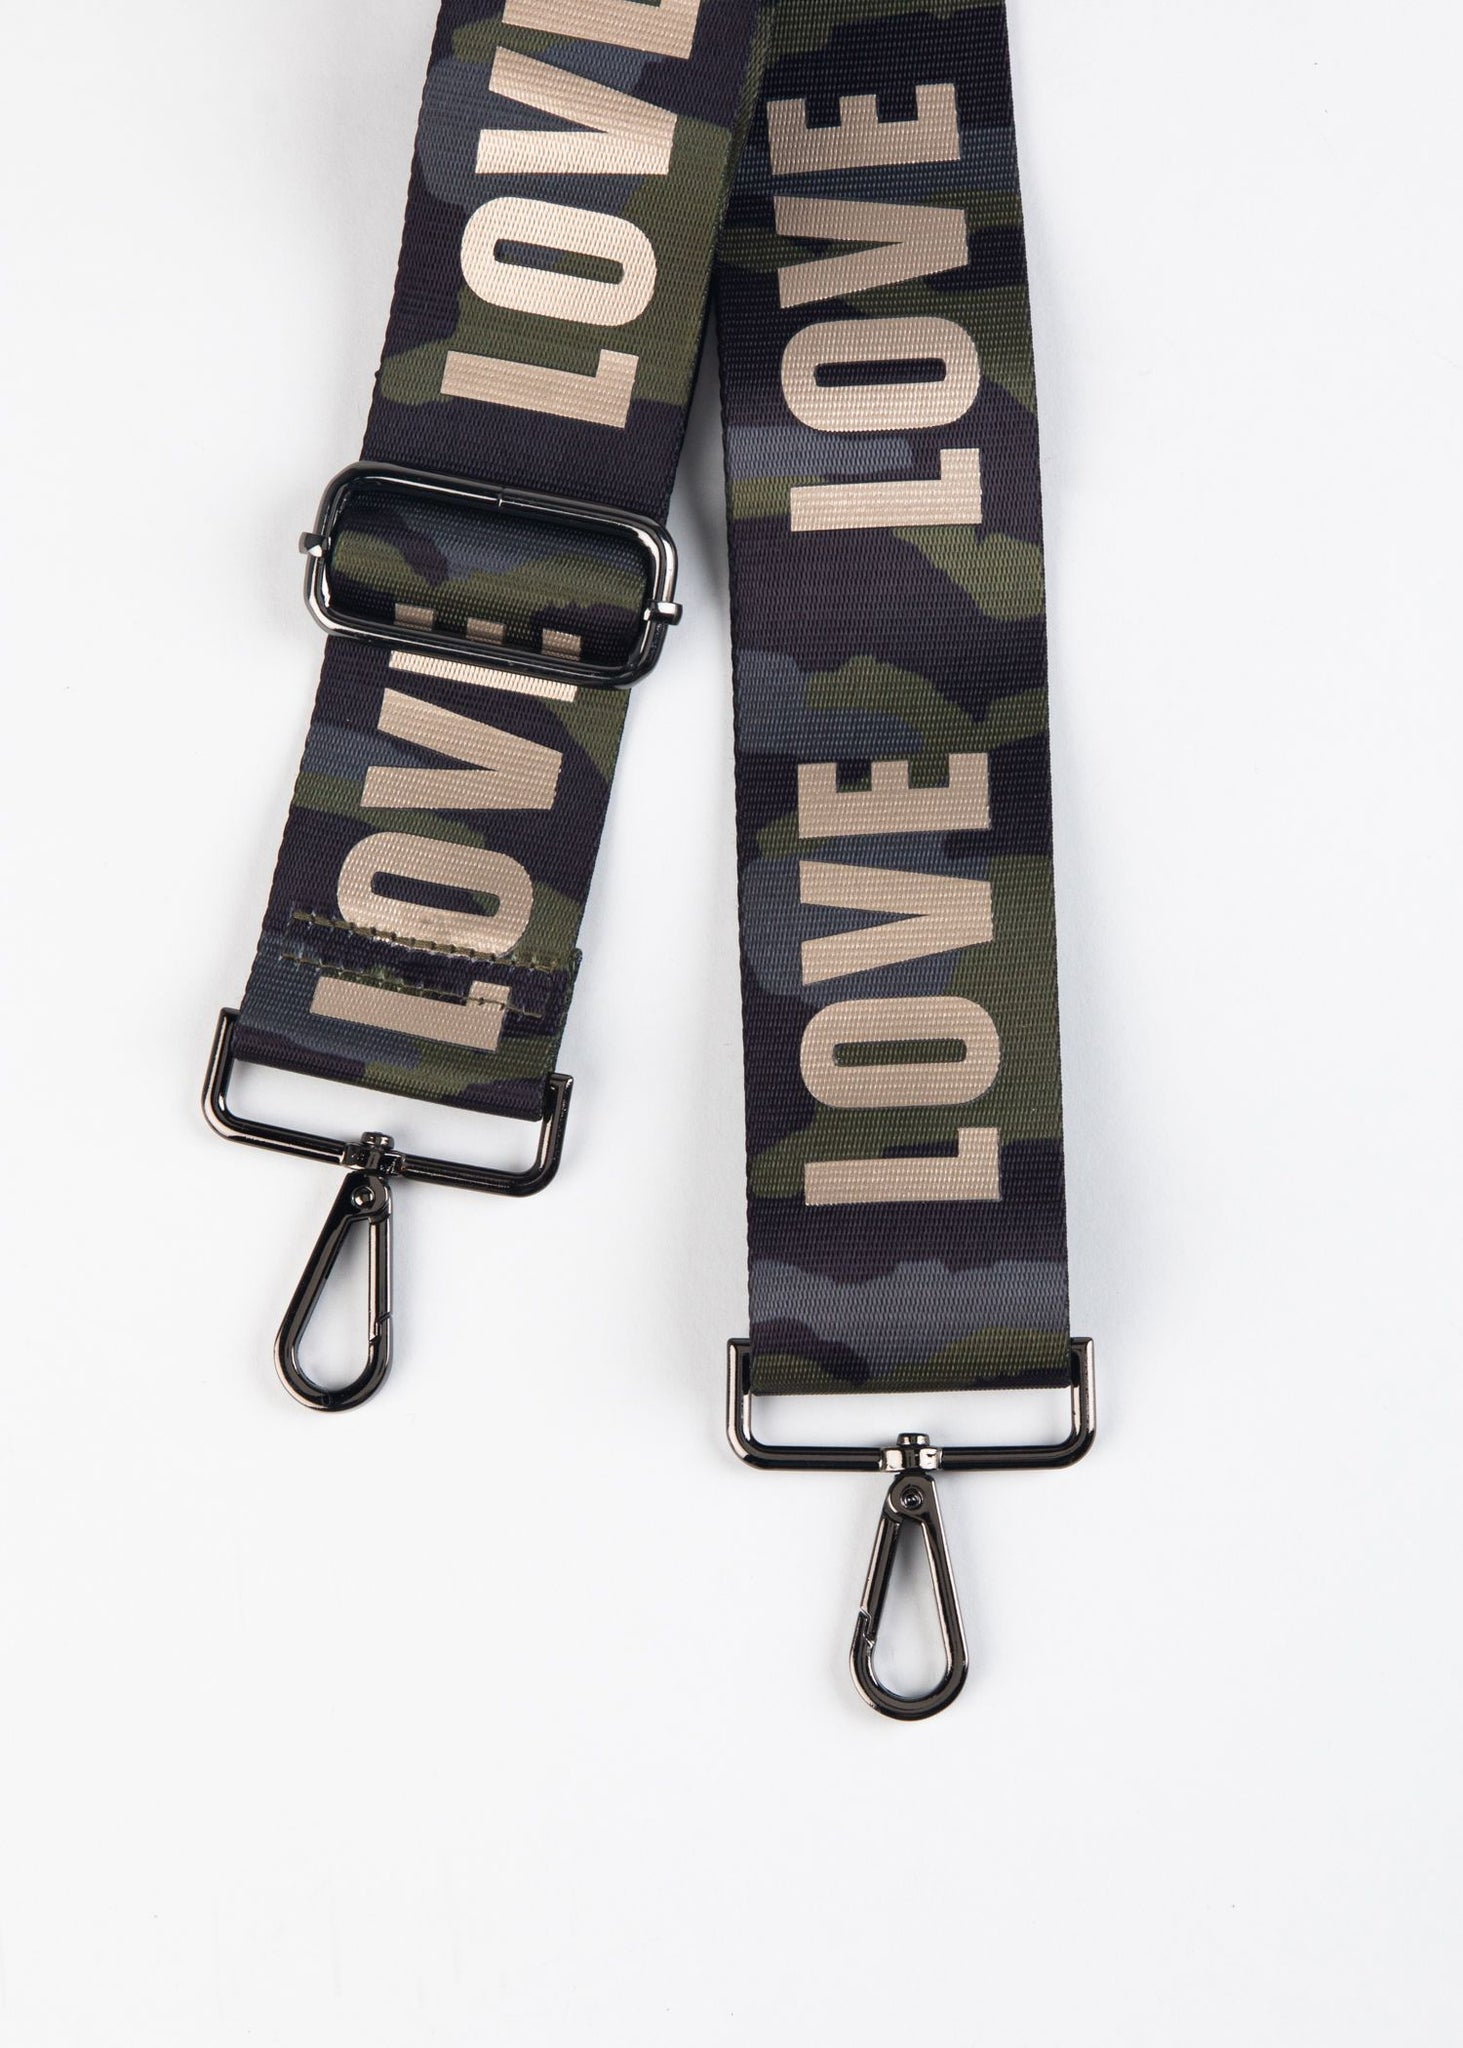 ADJUSTABLE LOVE CAMO BAG STRAP